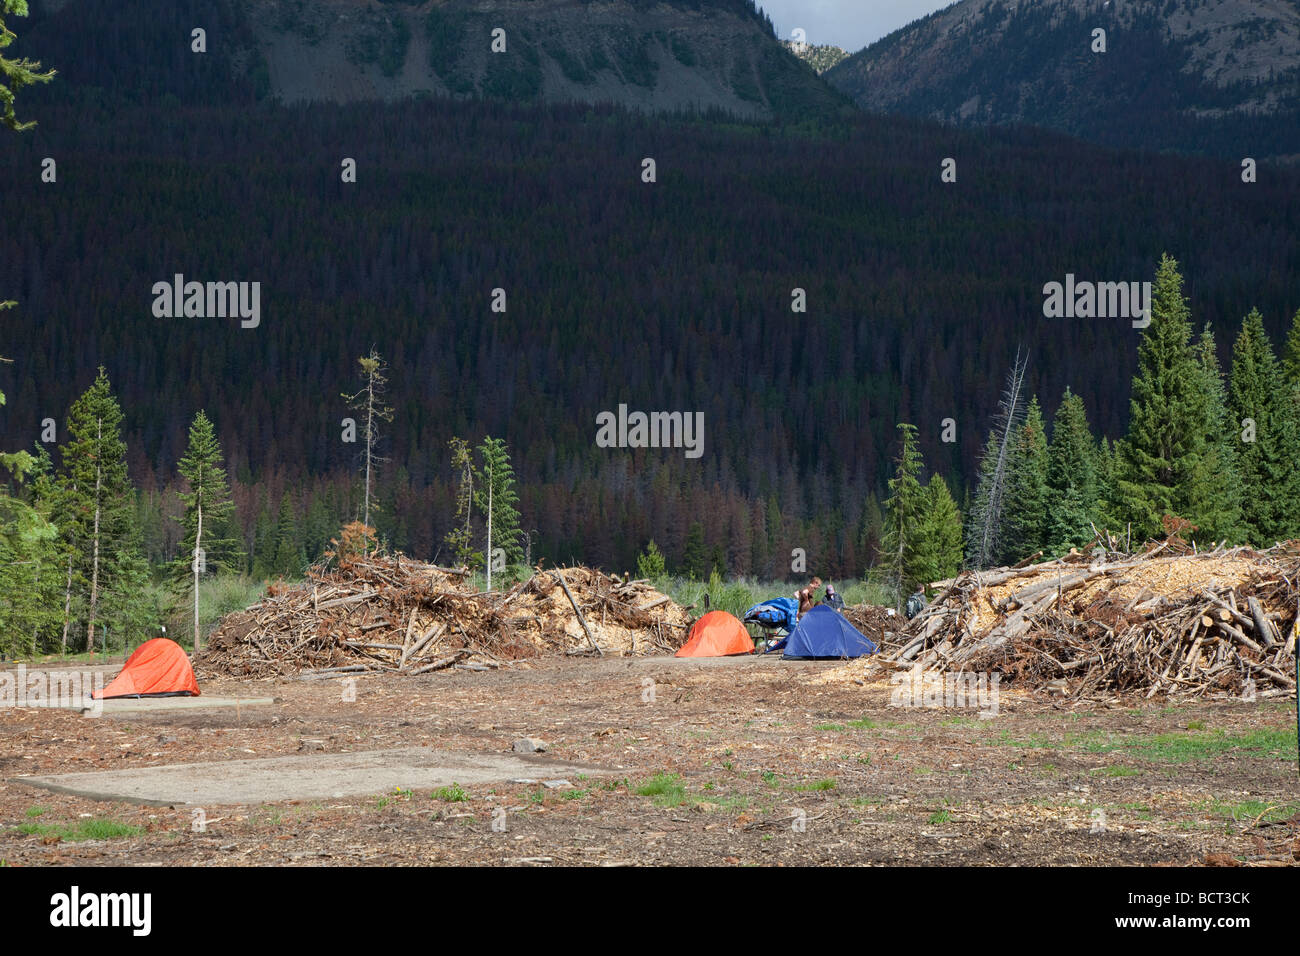 Pine trees in national park campground cut down after being killed by pine beetle outbreak - Stock Image